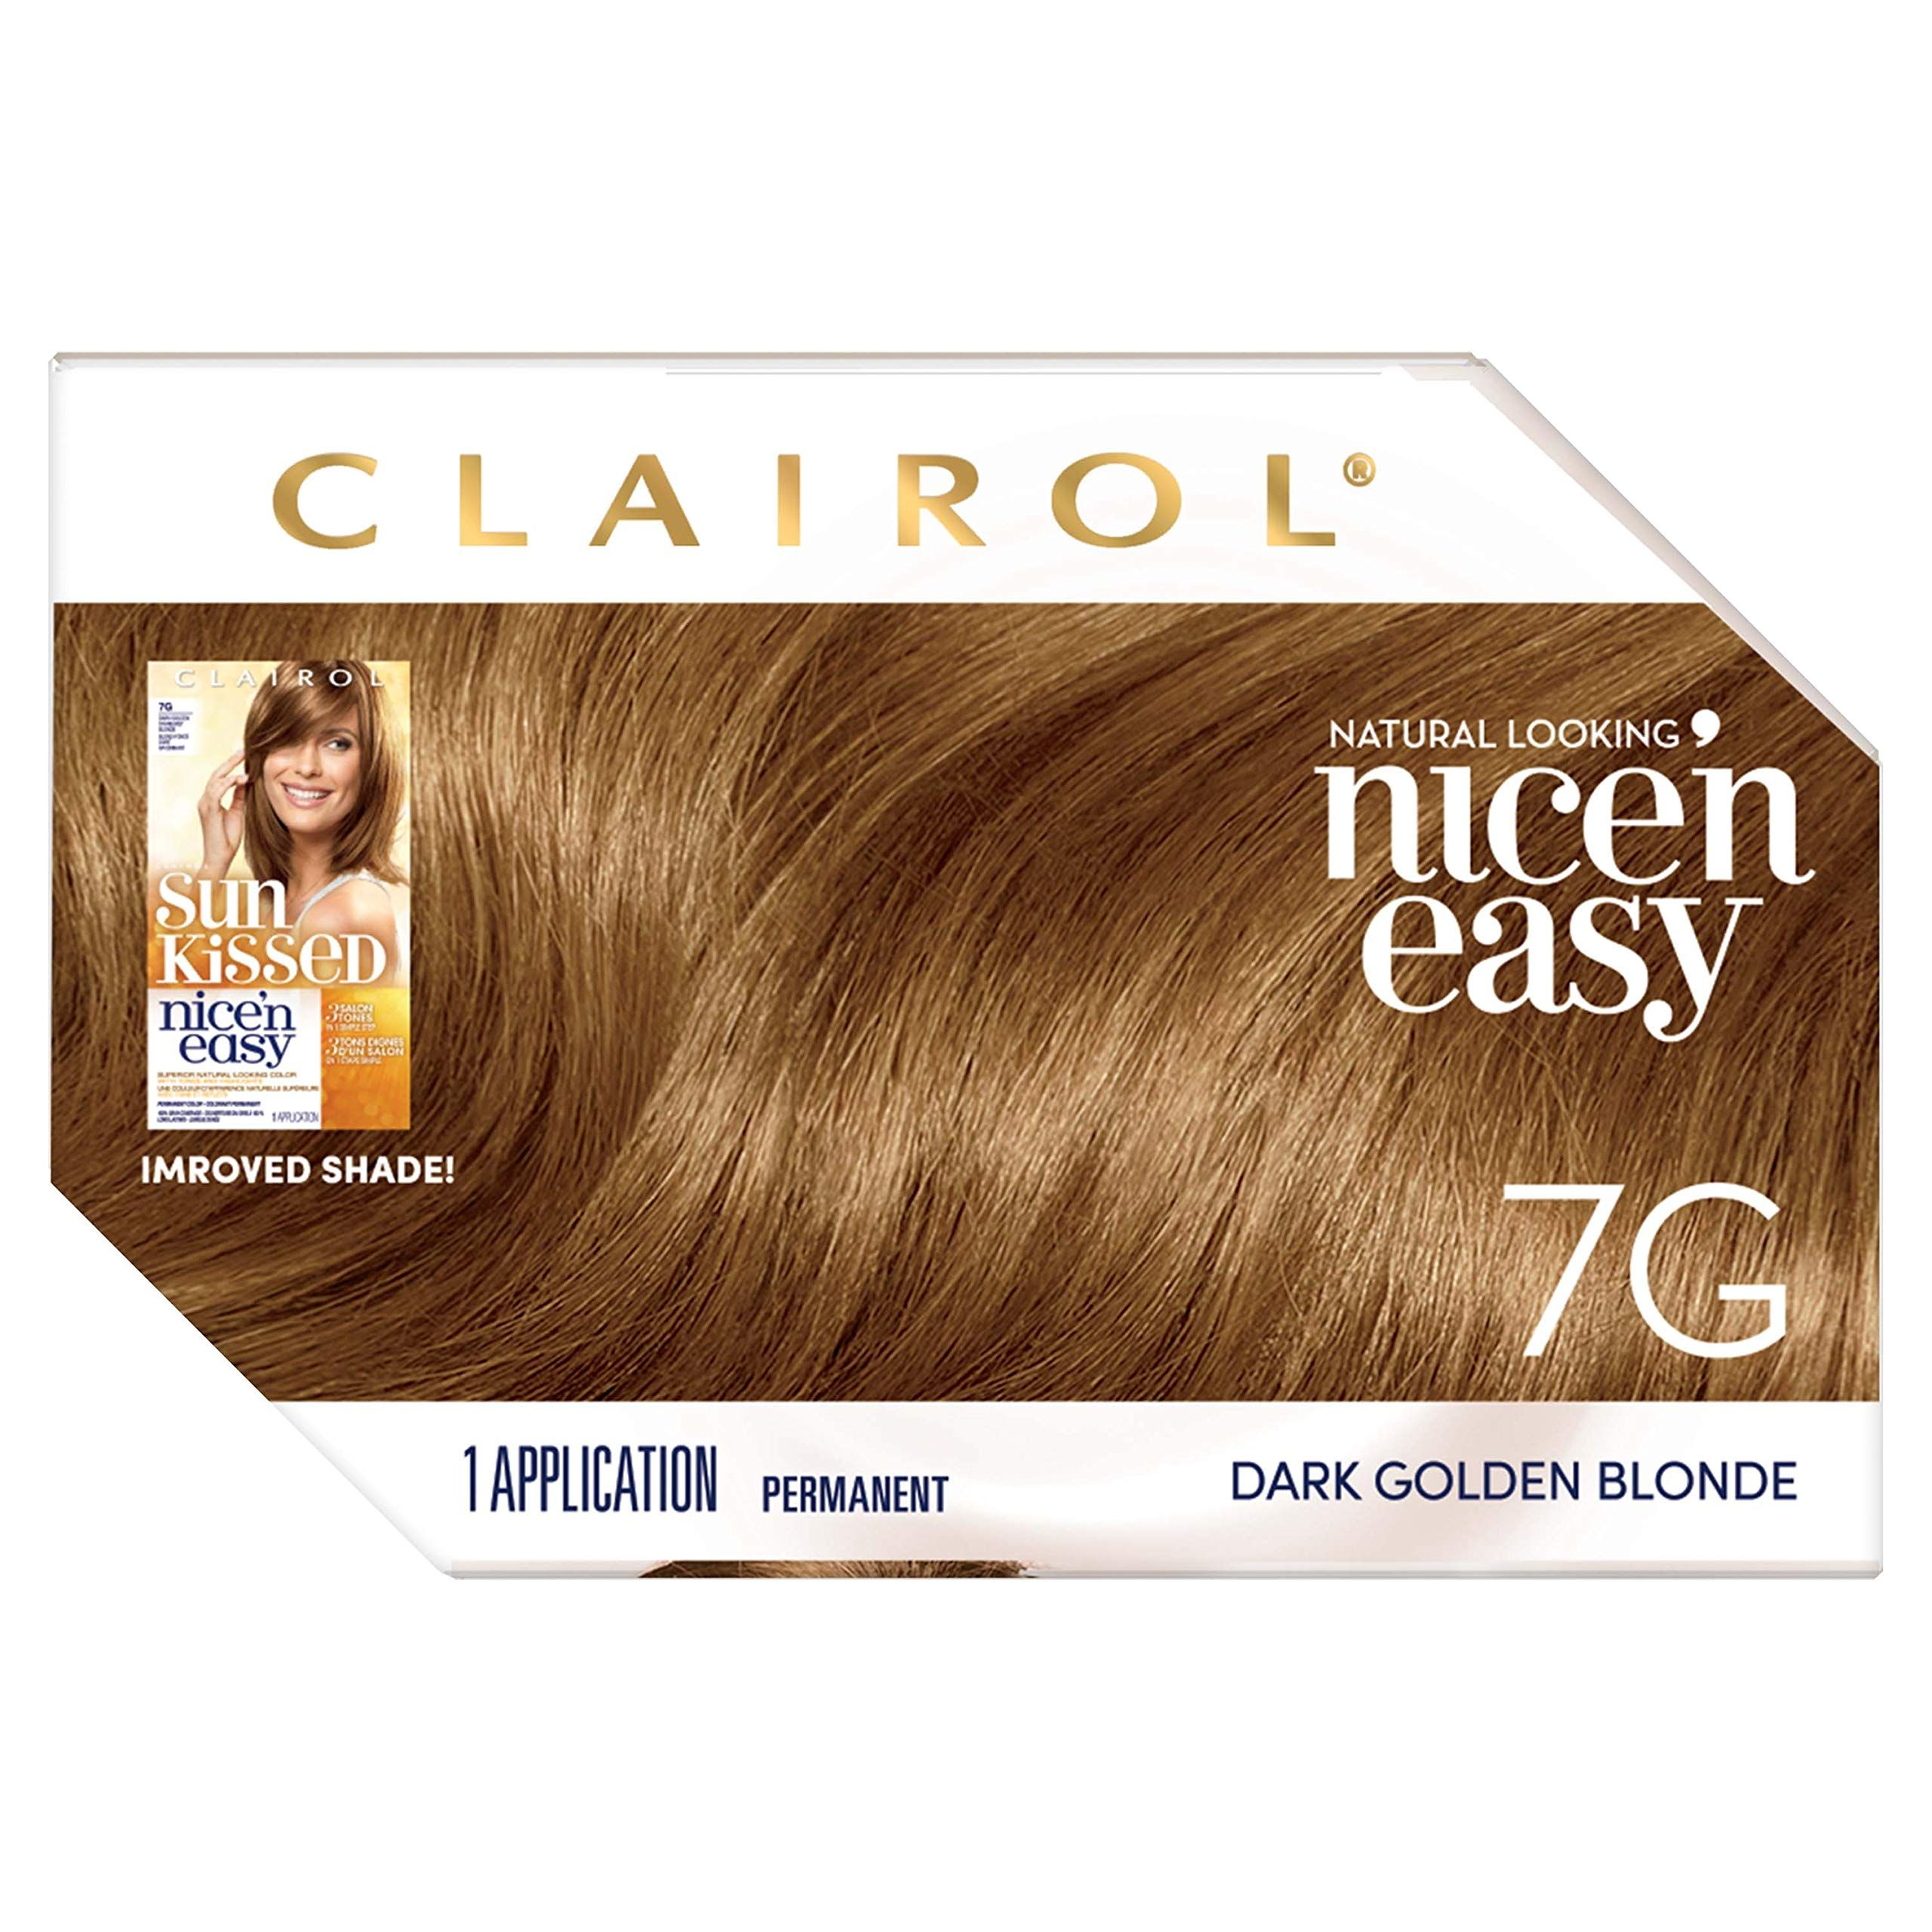 Clairol Nice N Easy Permanent Hair Color You Can Get Additional Details At The Image Link It Is An Affiliate L In 2020 Dark Golden Blonde Hair Color Golden Blonde